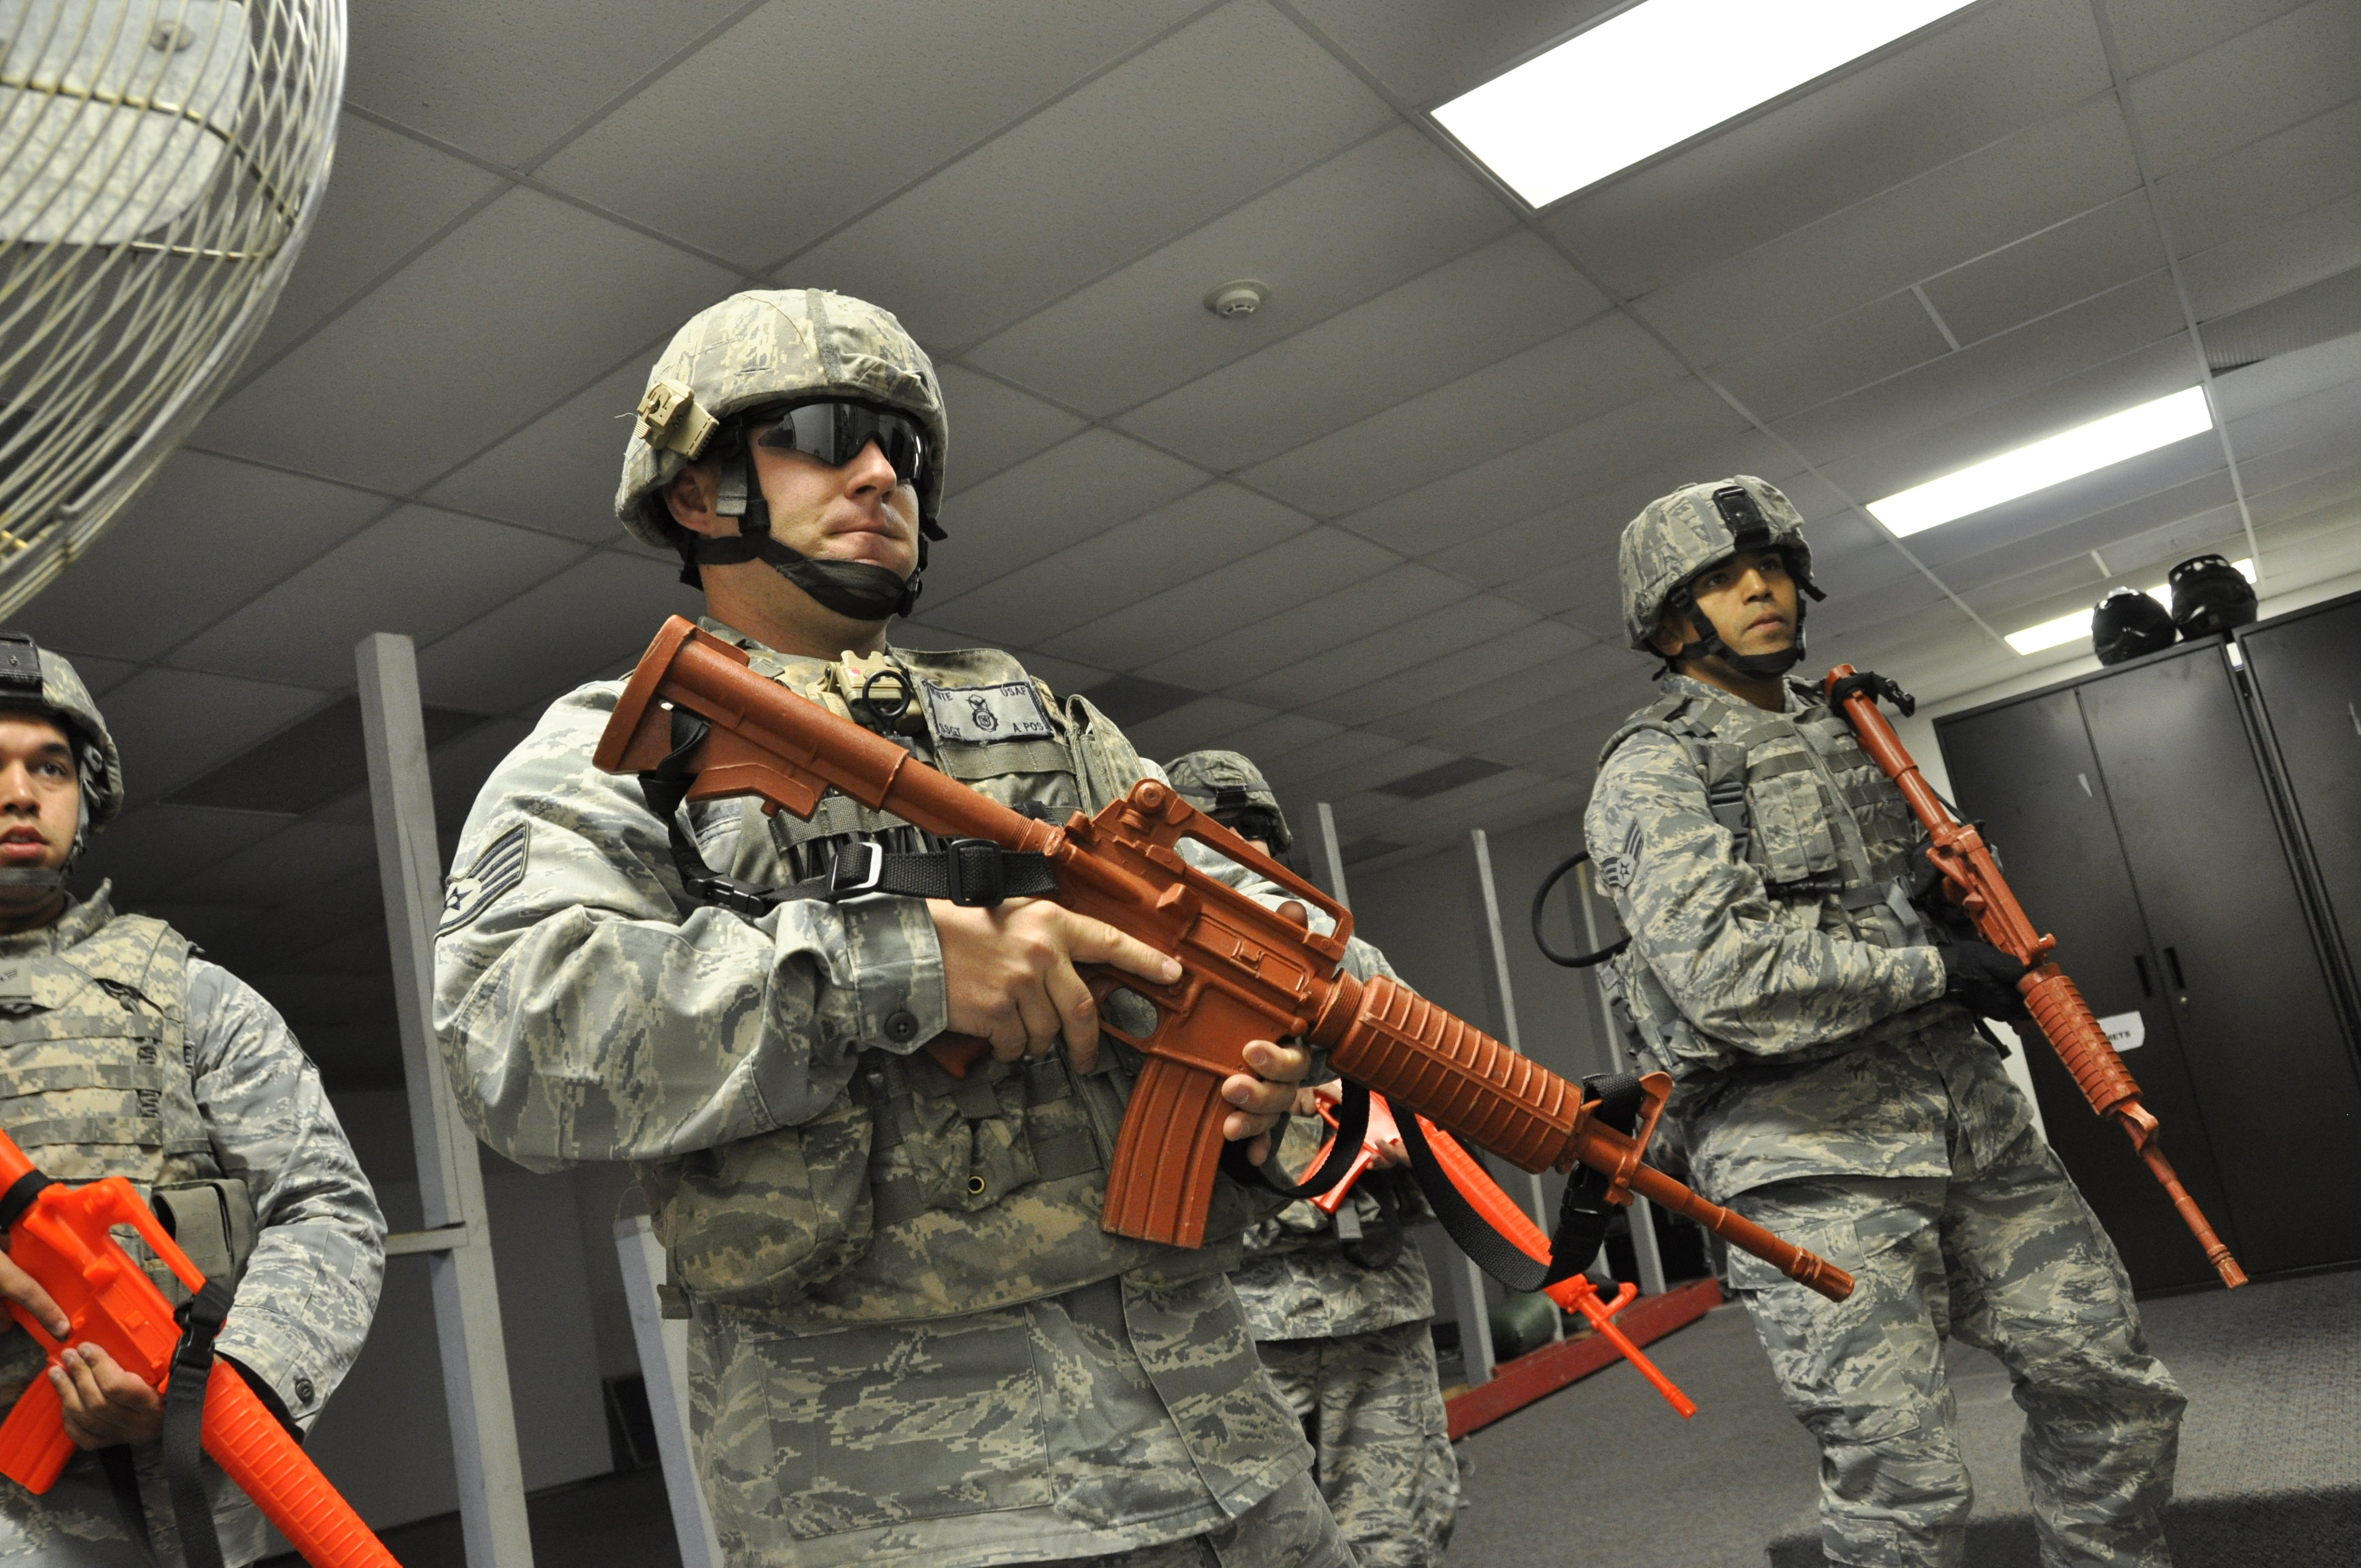 whiteman reservists conduct combined response exercise > air force hi res photo details